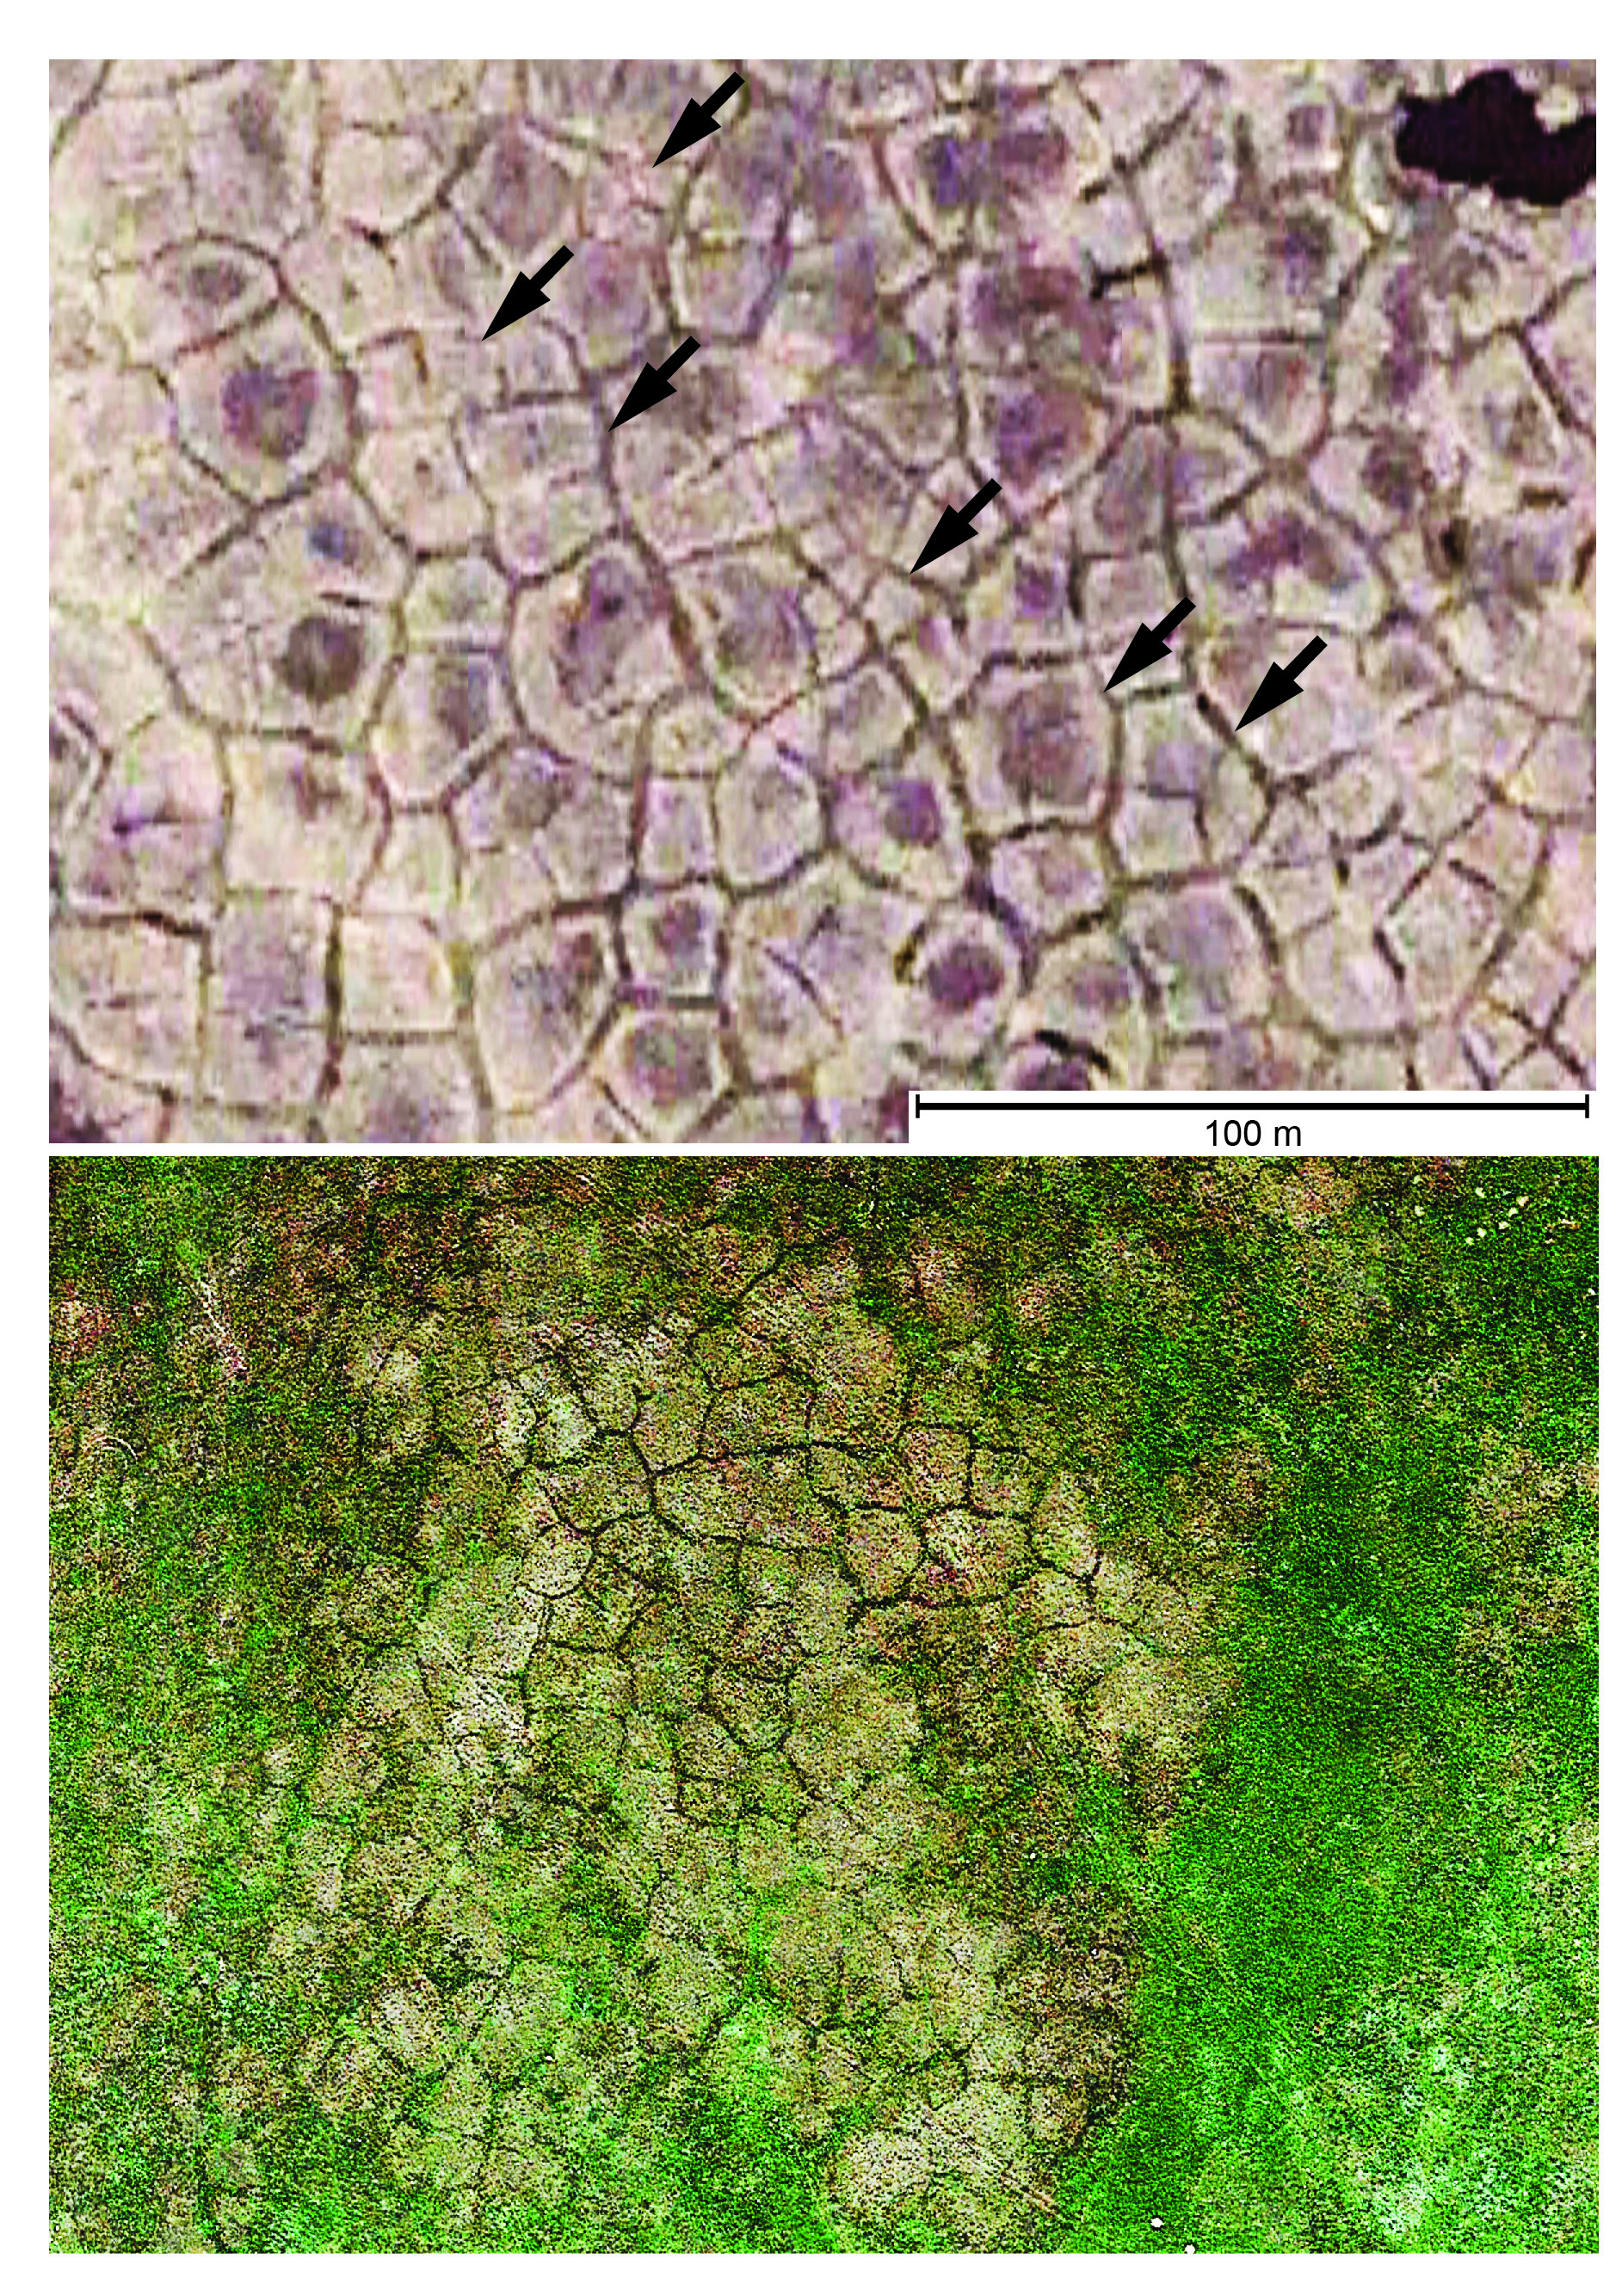 By searching Google Earth images, researchers with the Conservation and Survey Division discovered evidence of permafrost in Nebraska's soil. | Courtesy image